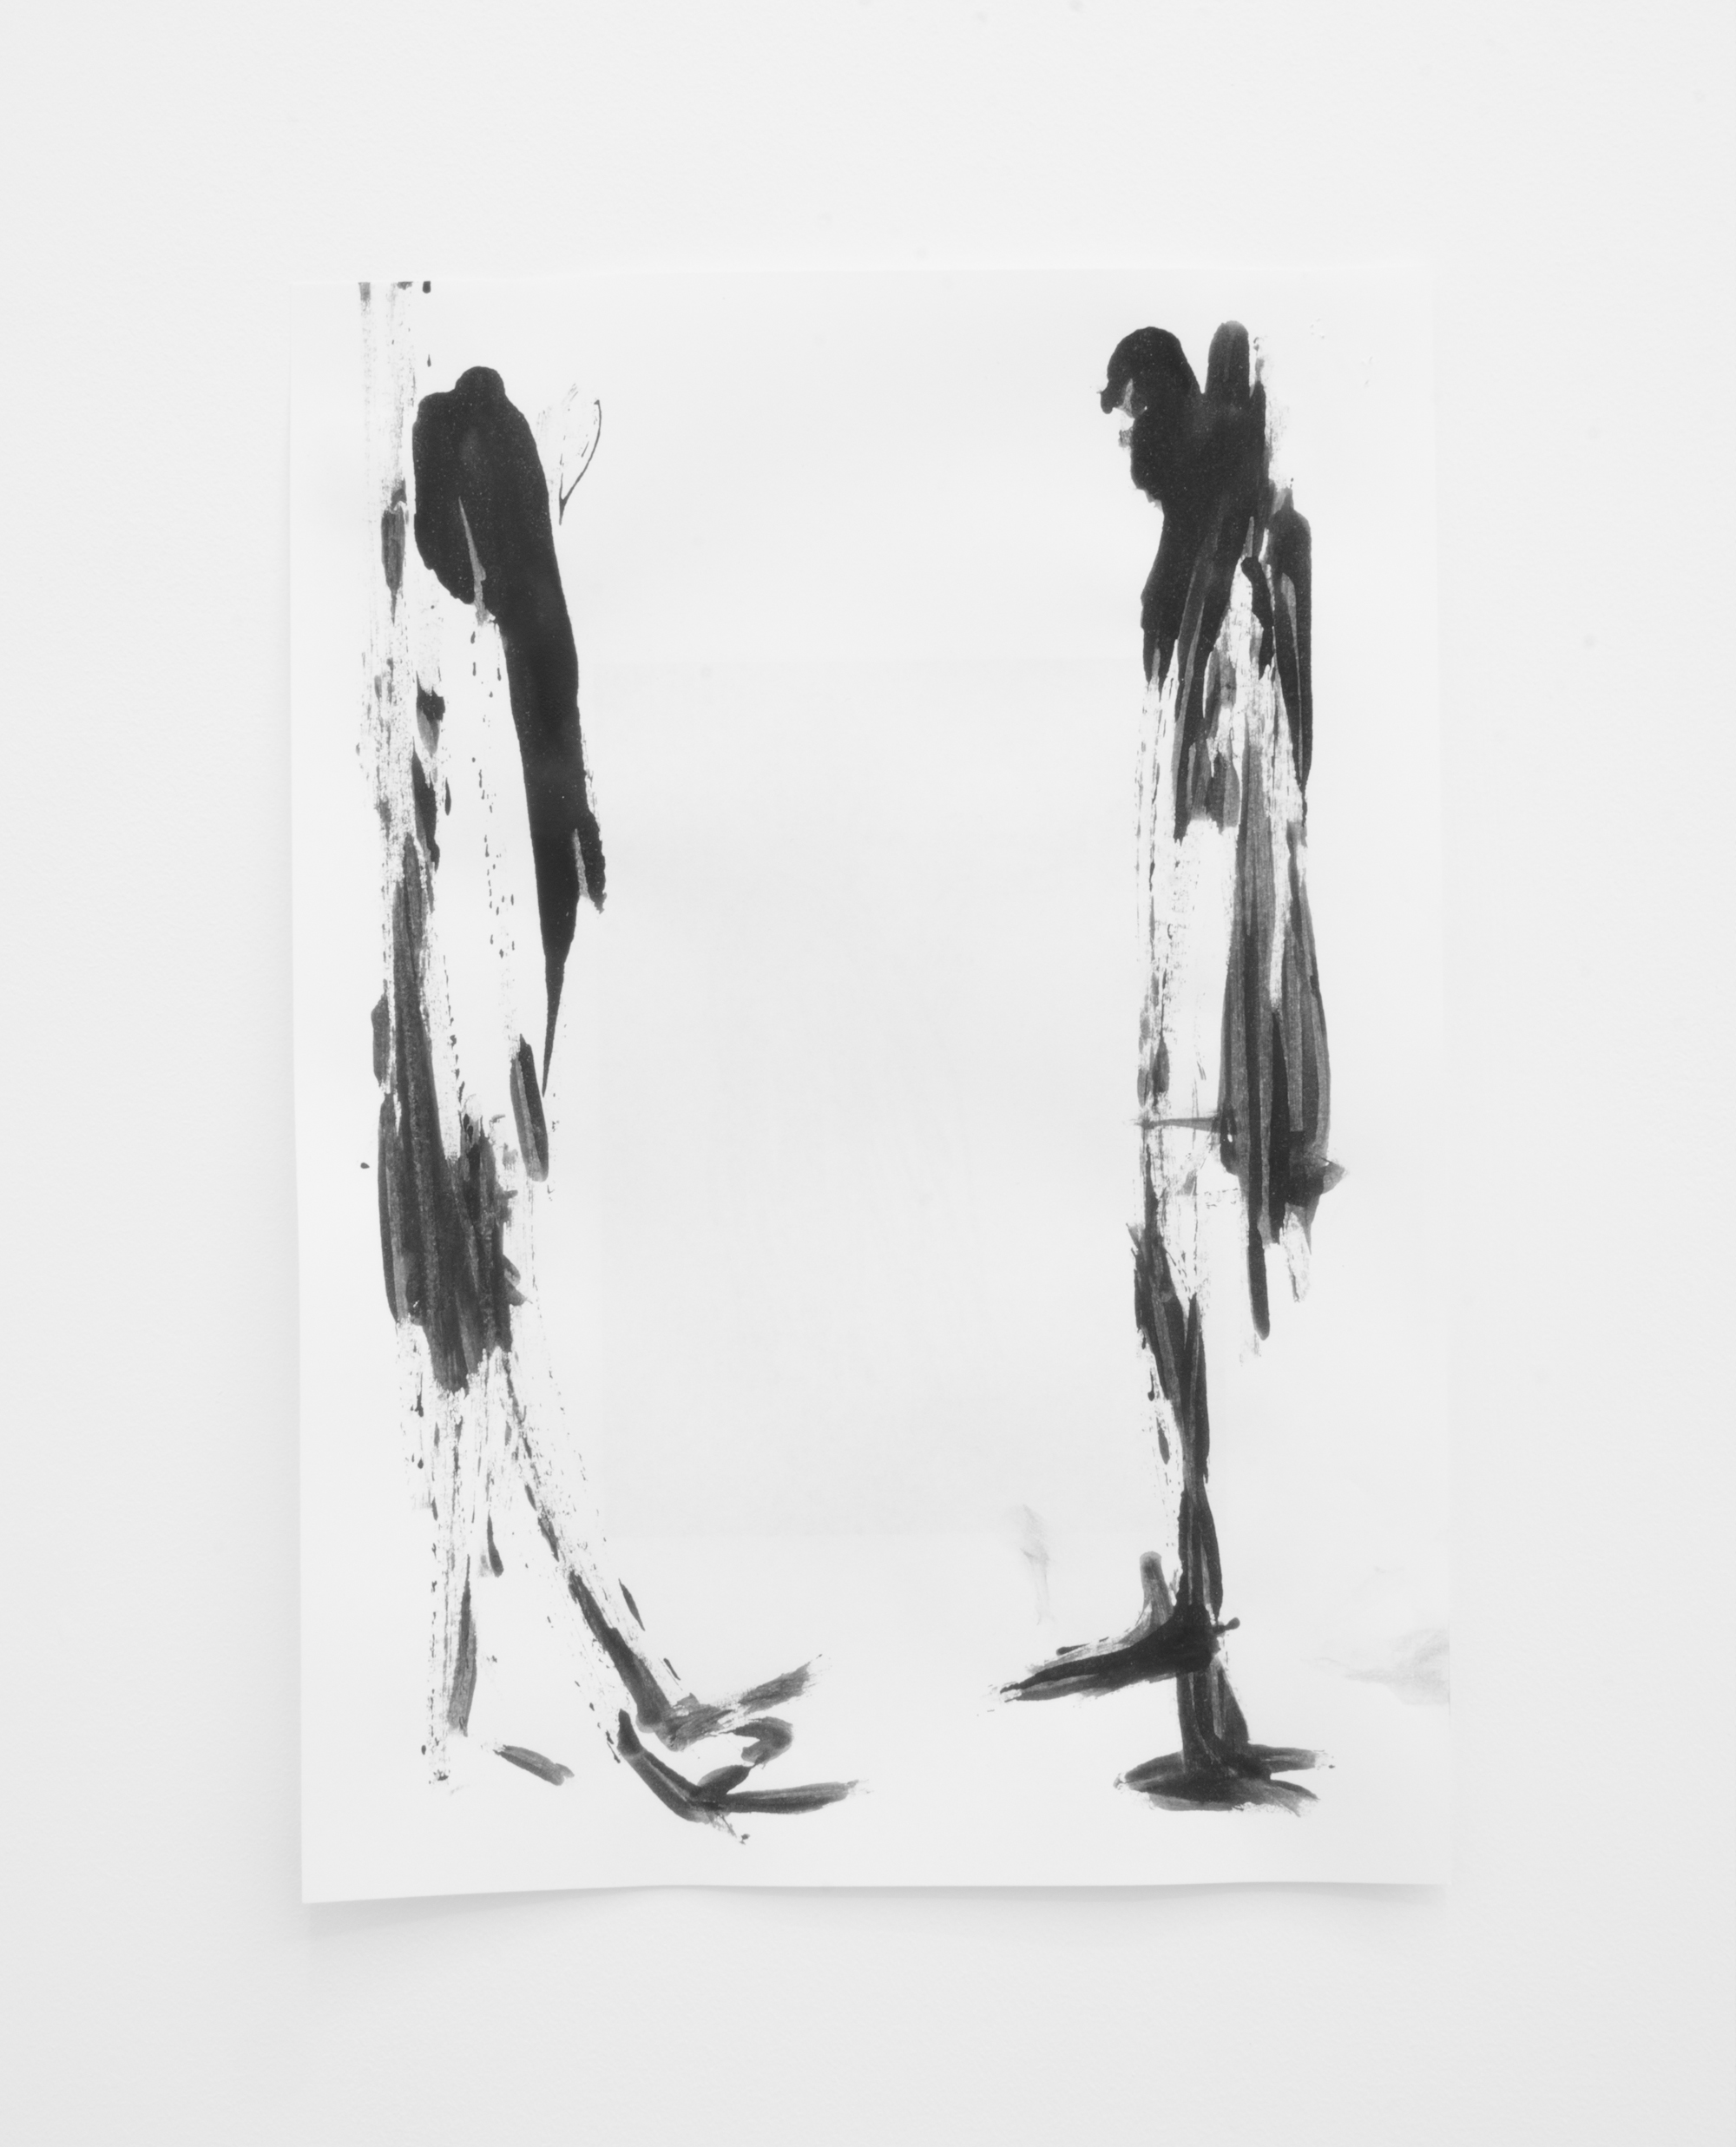 Deo-Drawing (Portrait 6)  2017 Printing ink on paper 29.7 x 21 cm